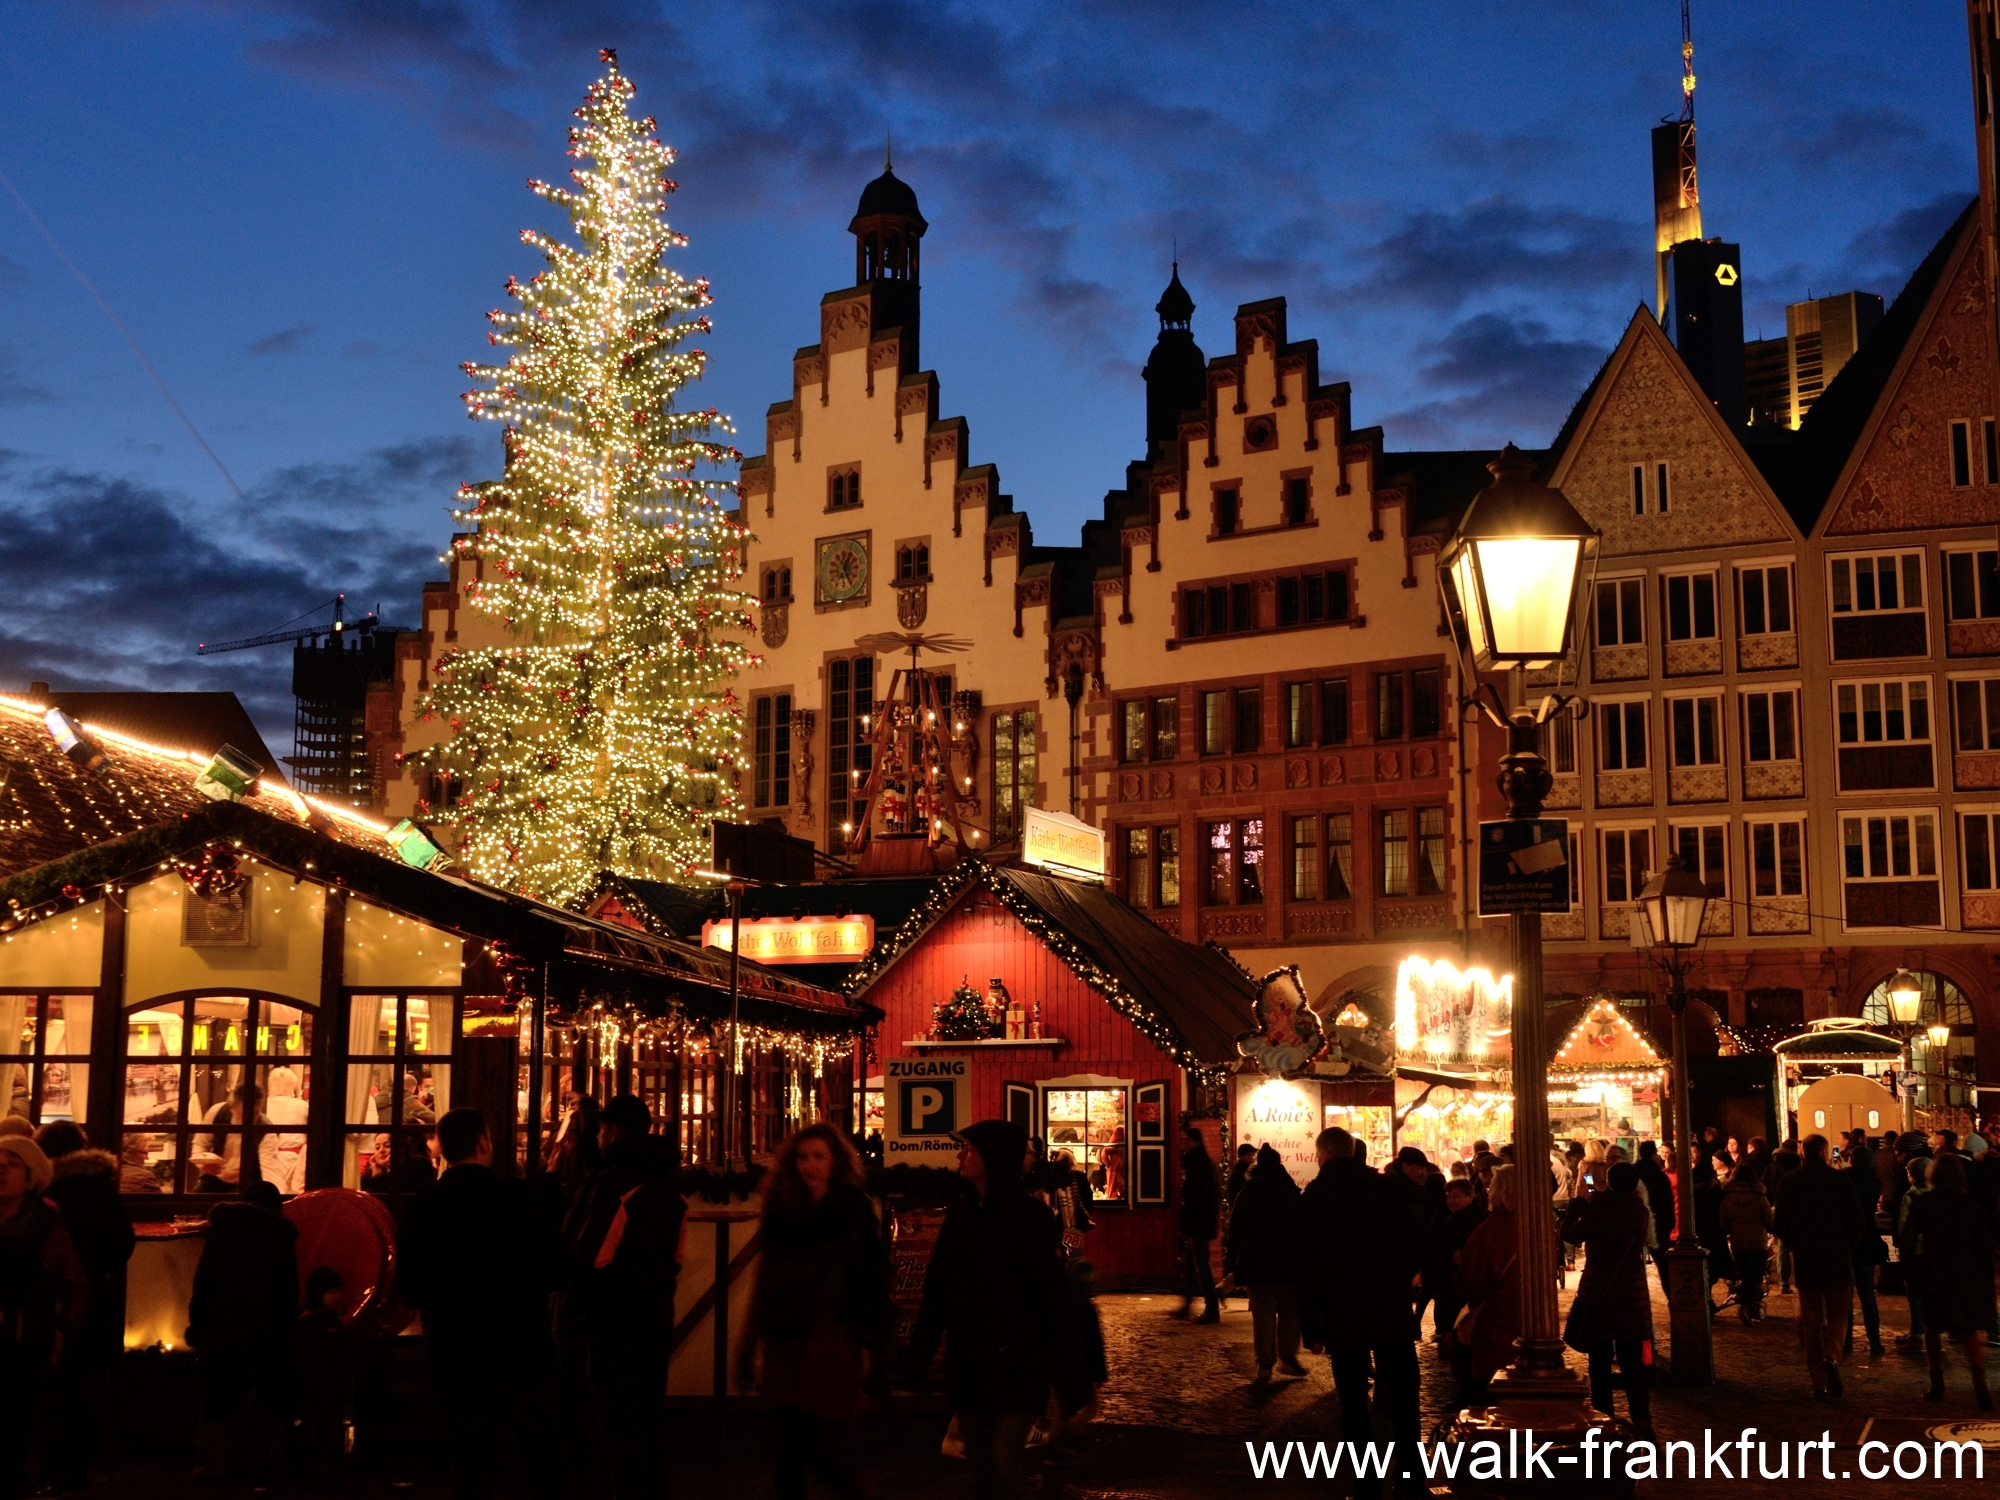 The Christmas Market at the heart of the old town by the town hall